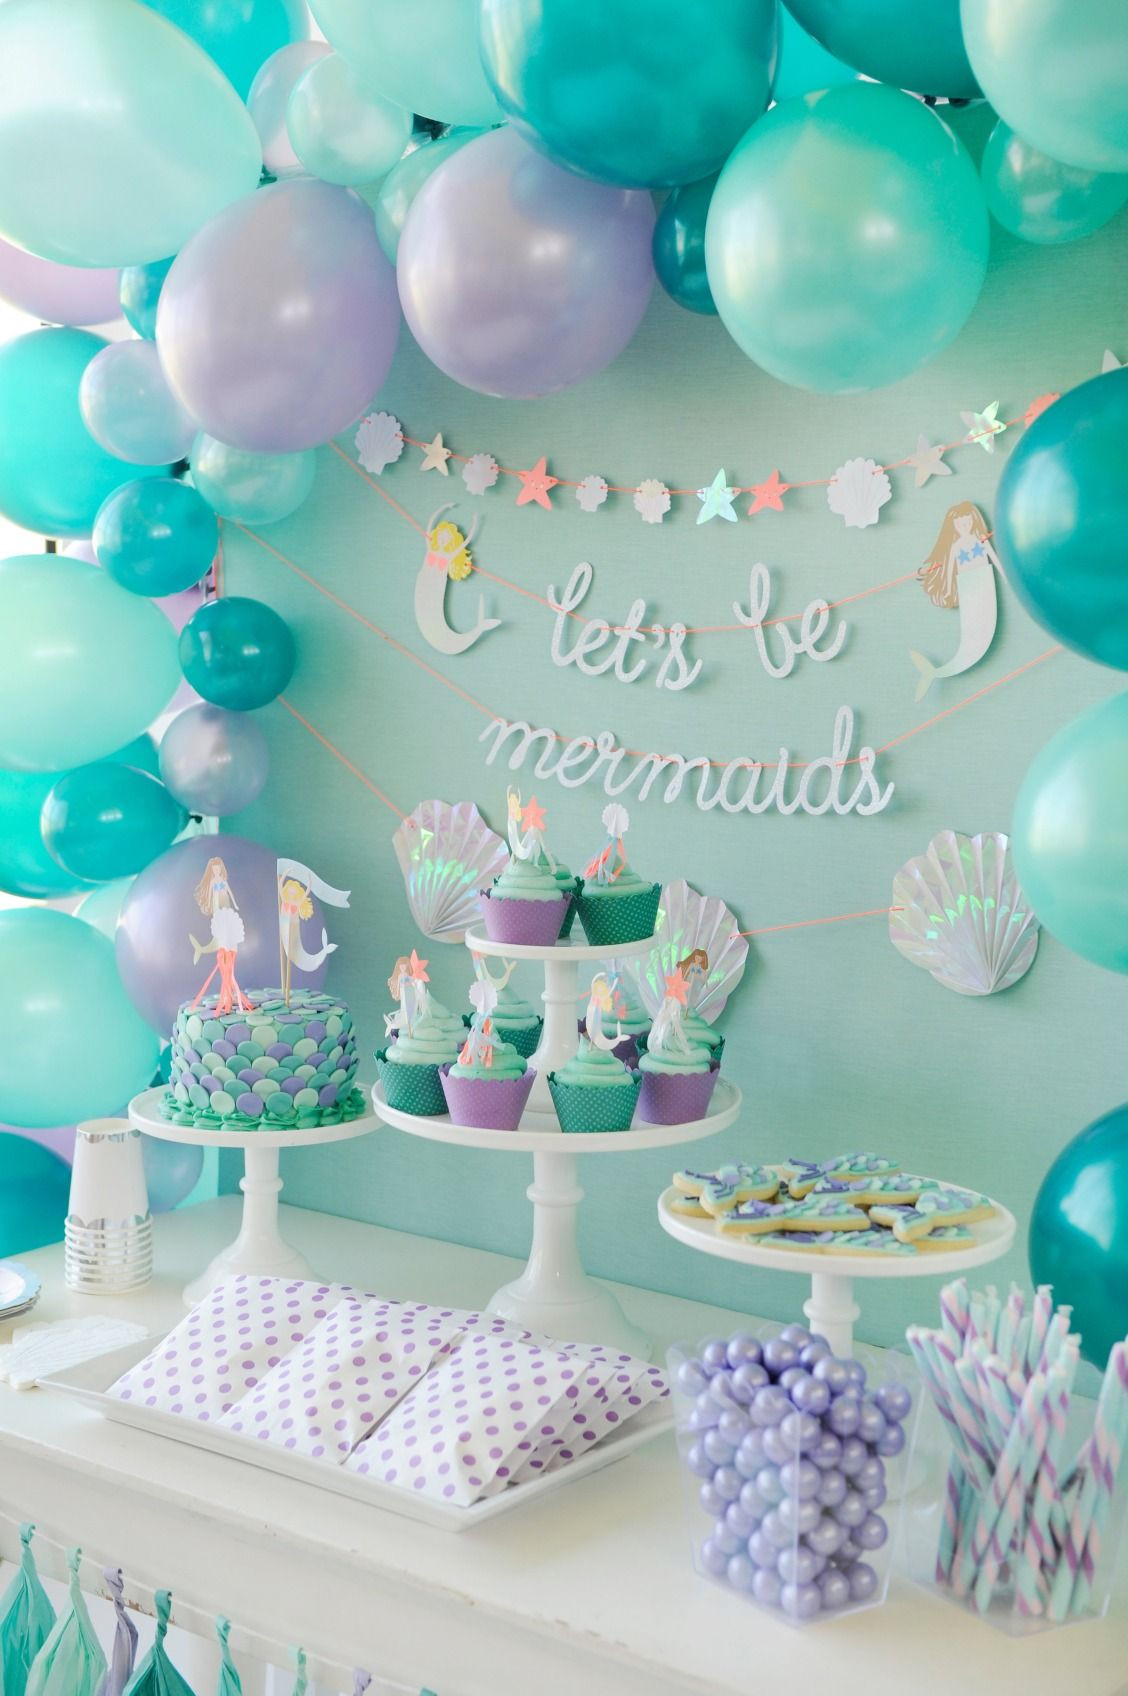 Mermaid Party Theme Ideas  Mermaid themed children s birthday party dessert table